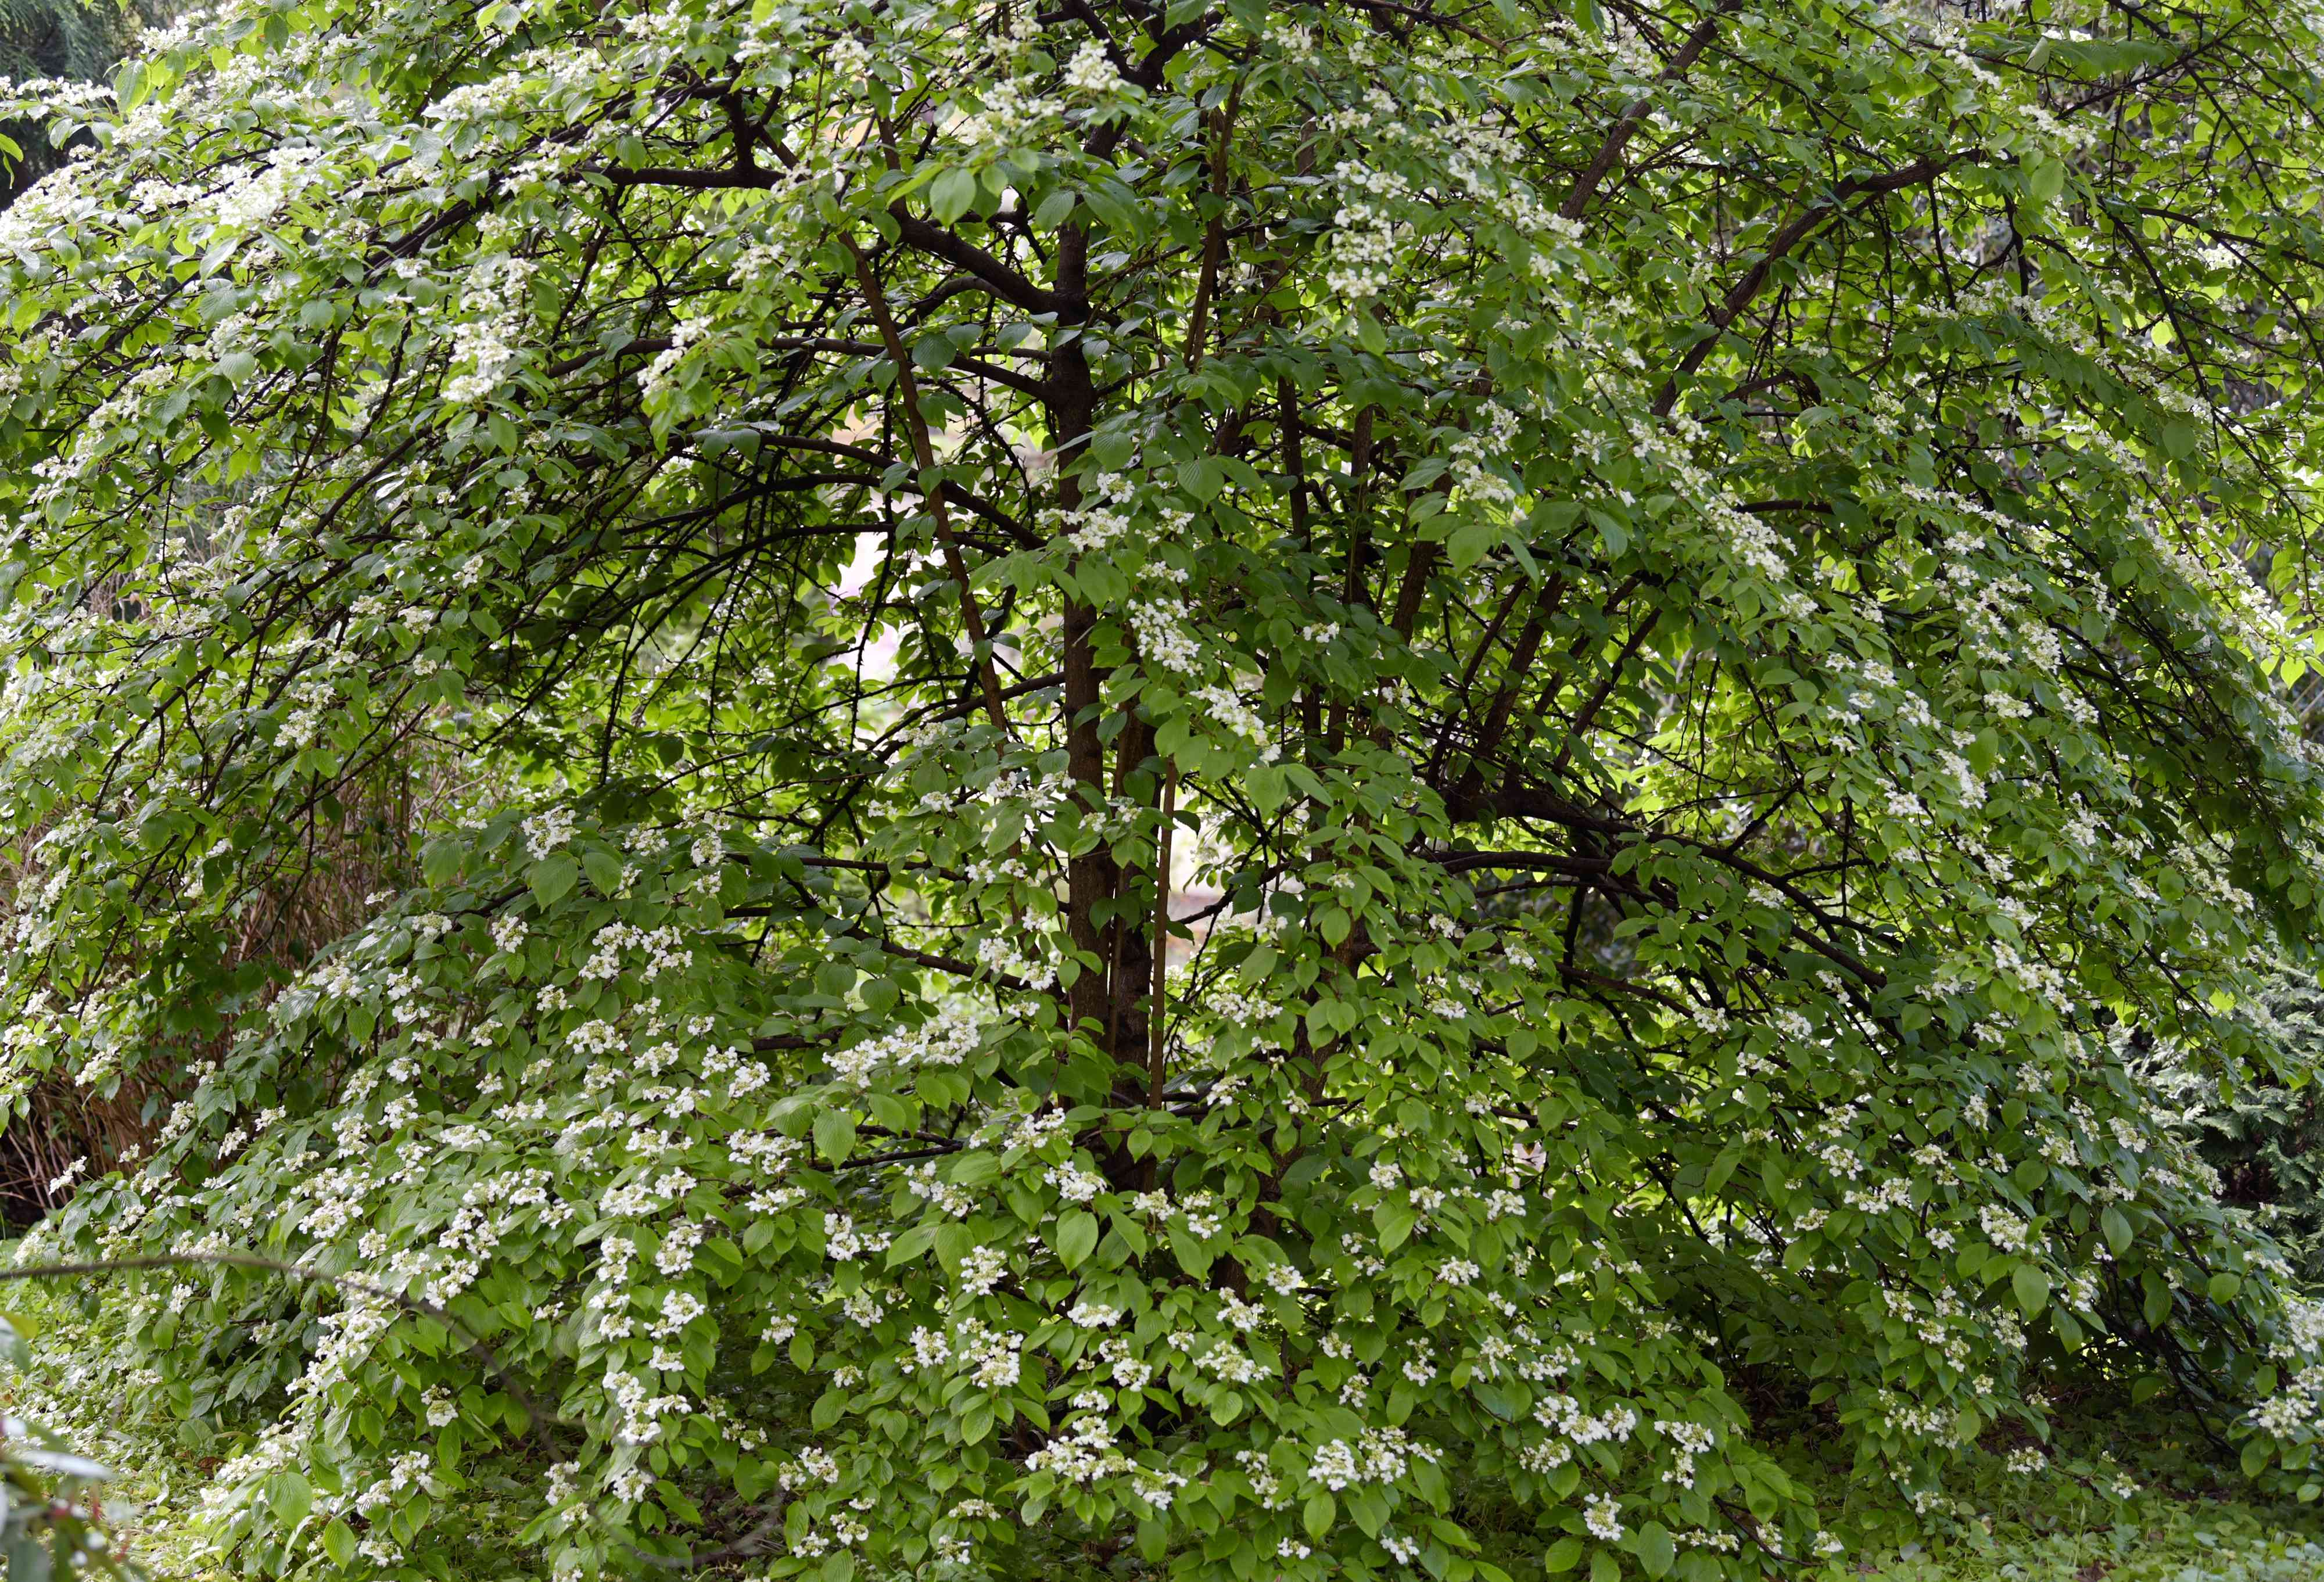 Doublefile viburnum tall shrub with small white flowers on sprawling branches